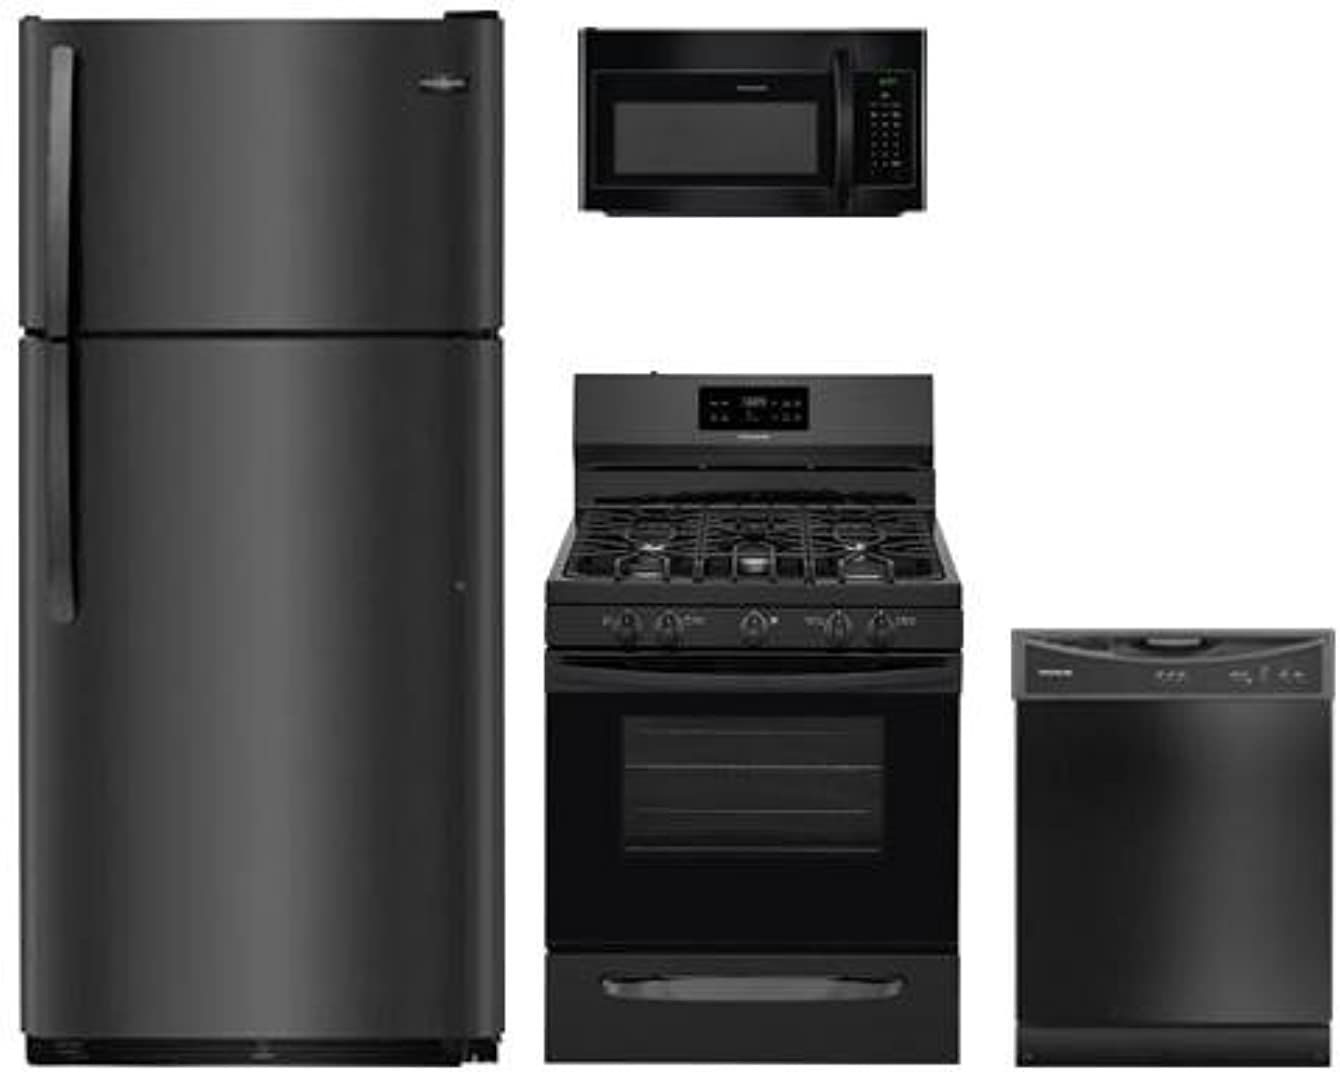 4-Piece Black Kitchen Package FFTR1821TB 30